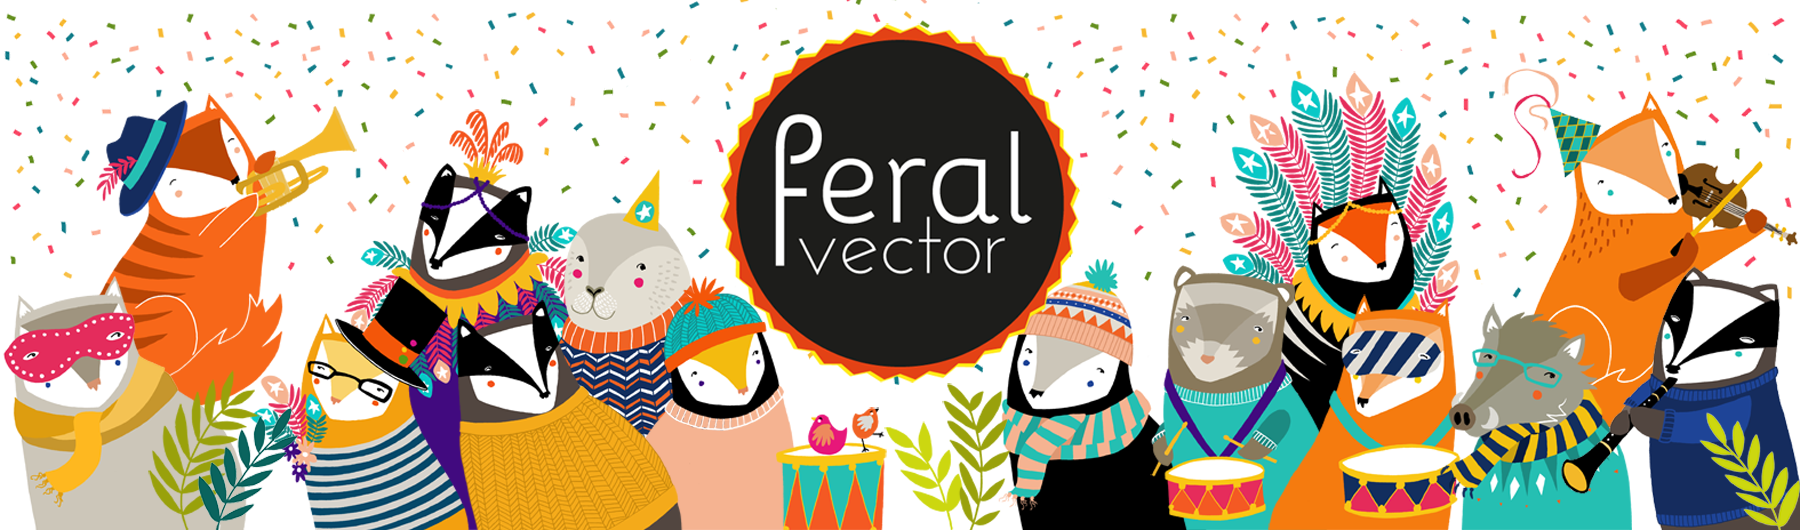 Feral Vector 2019